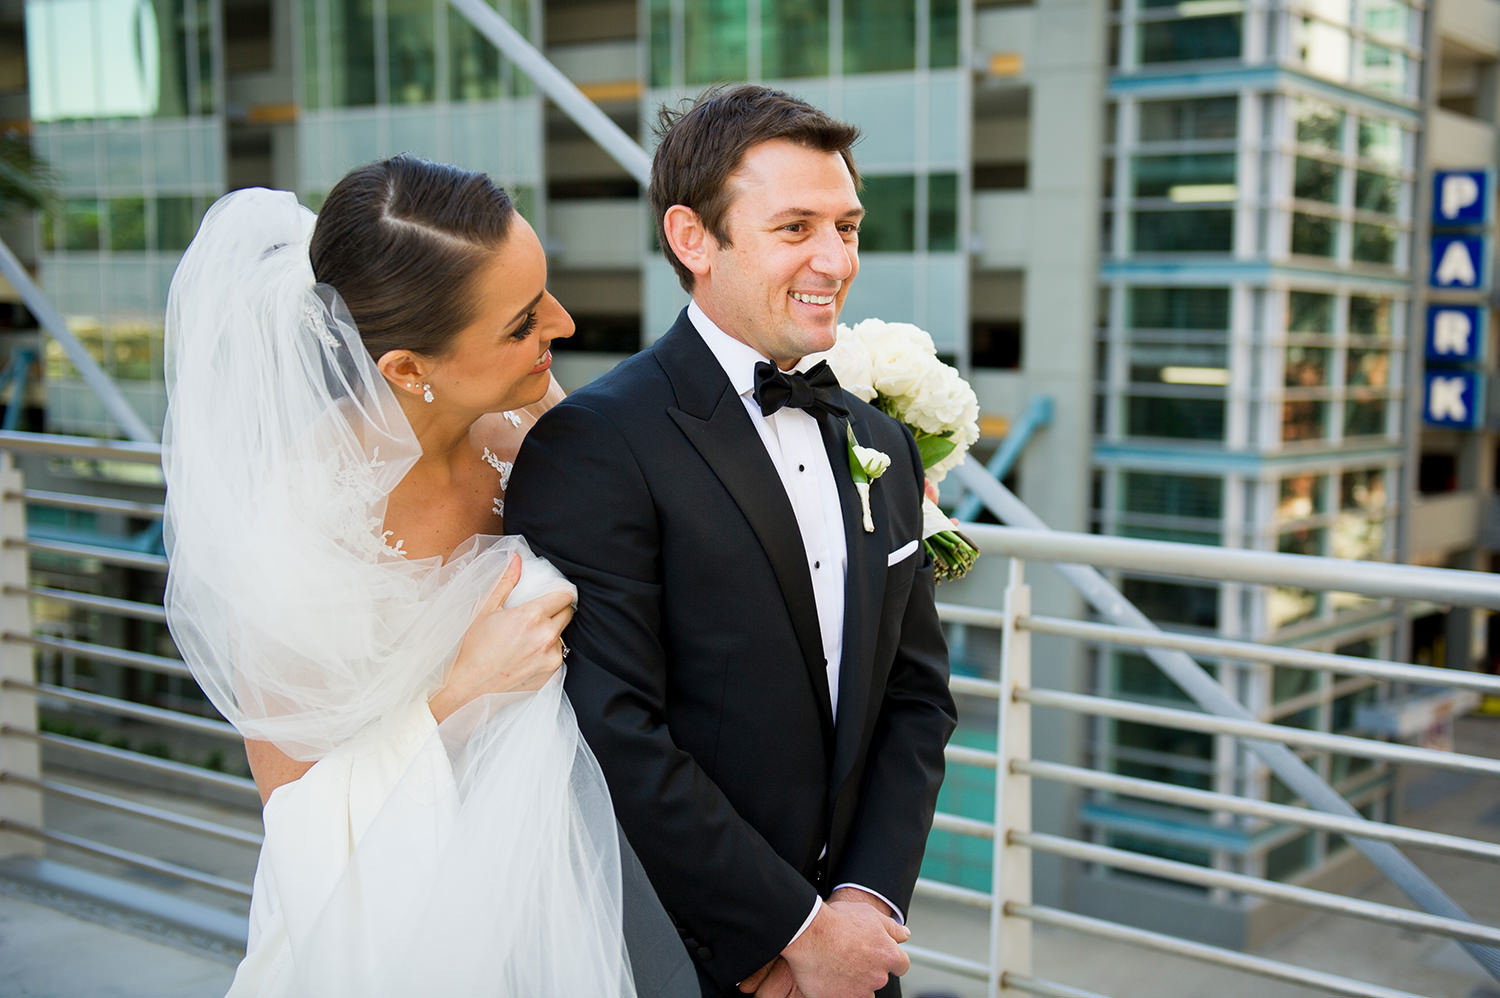 First look for the groom and bride at the Omni Hotel